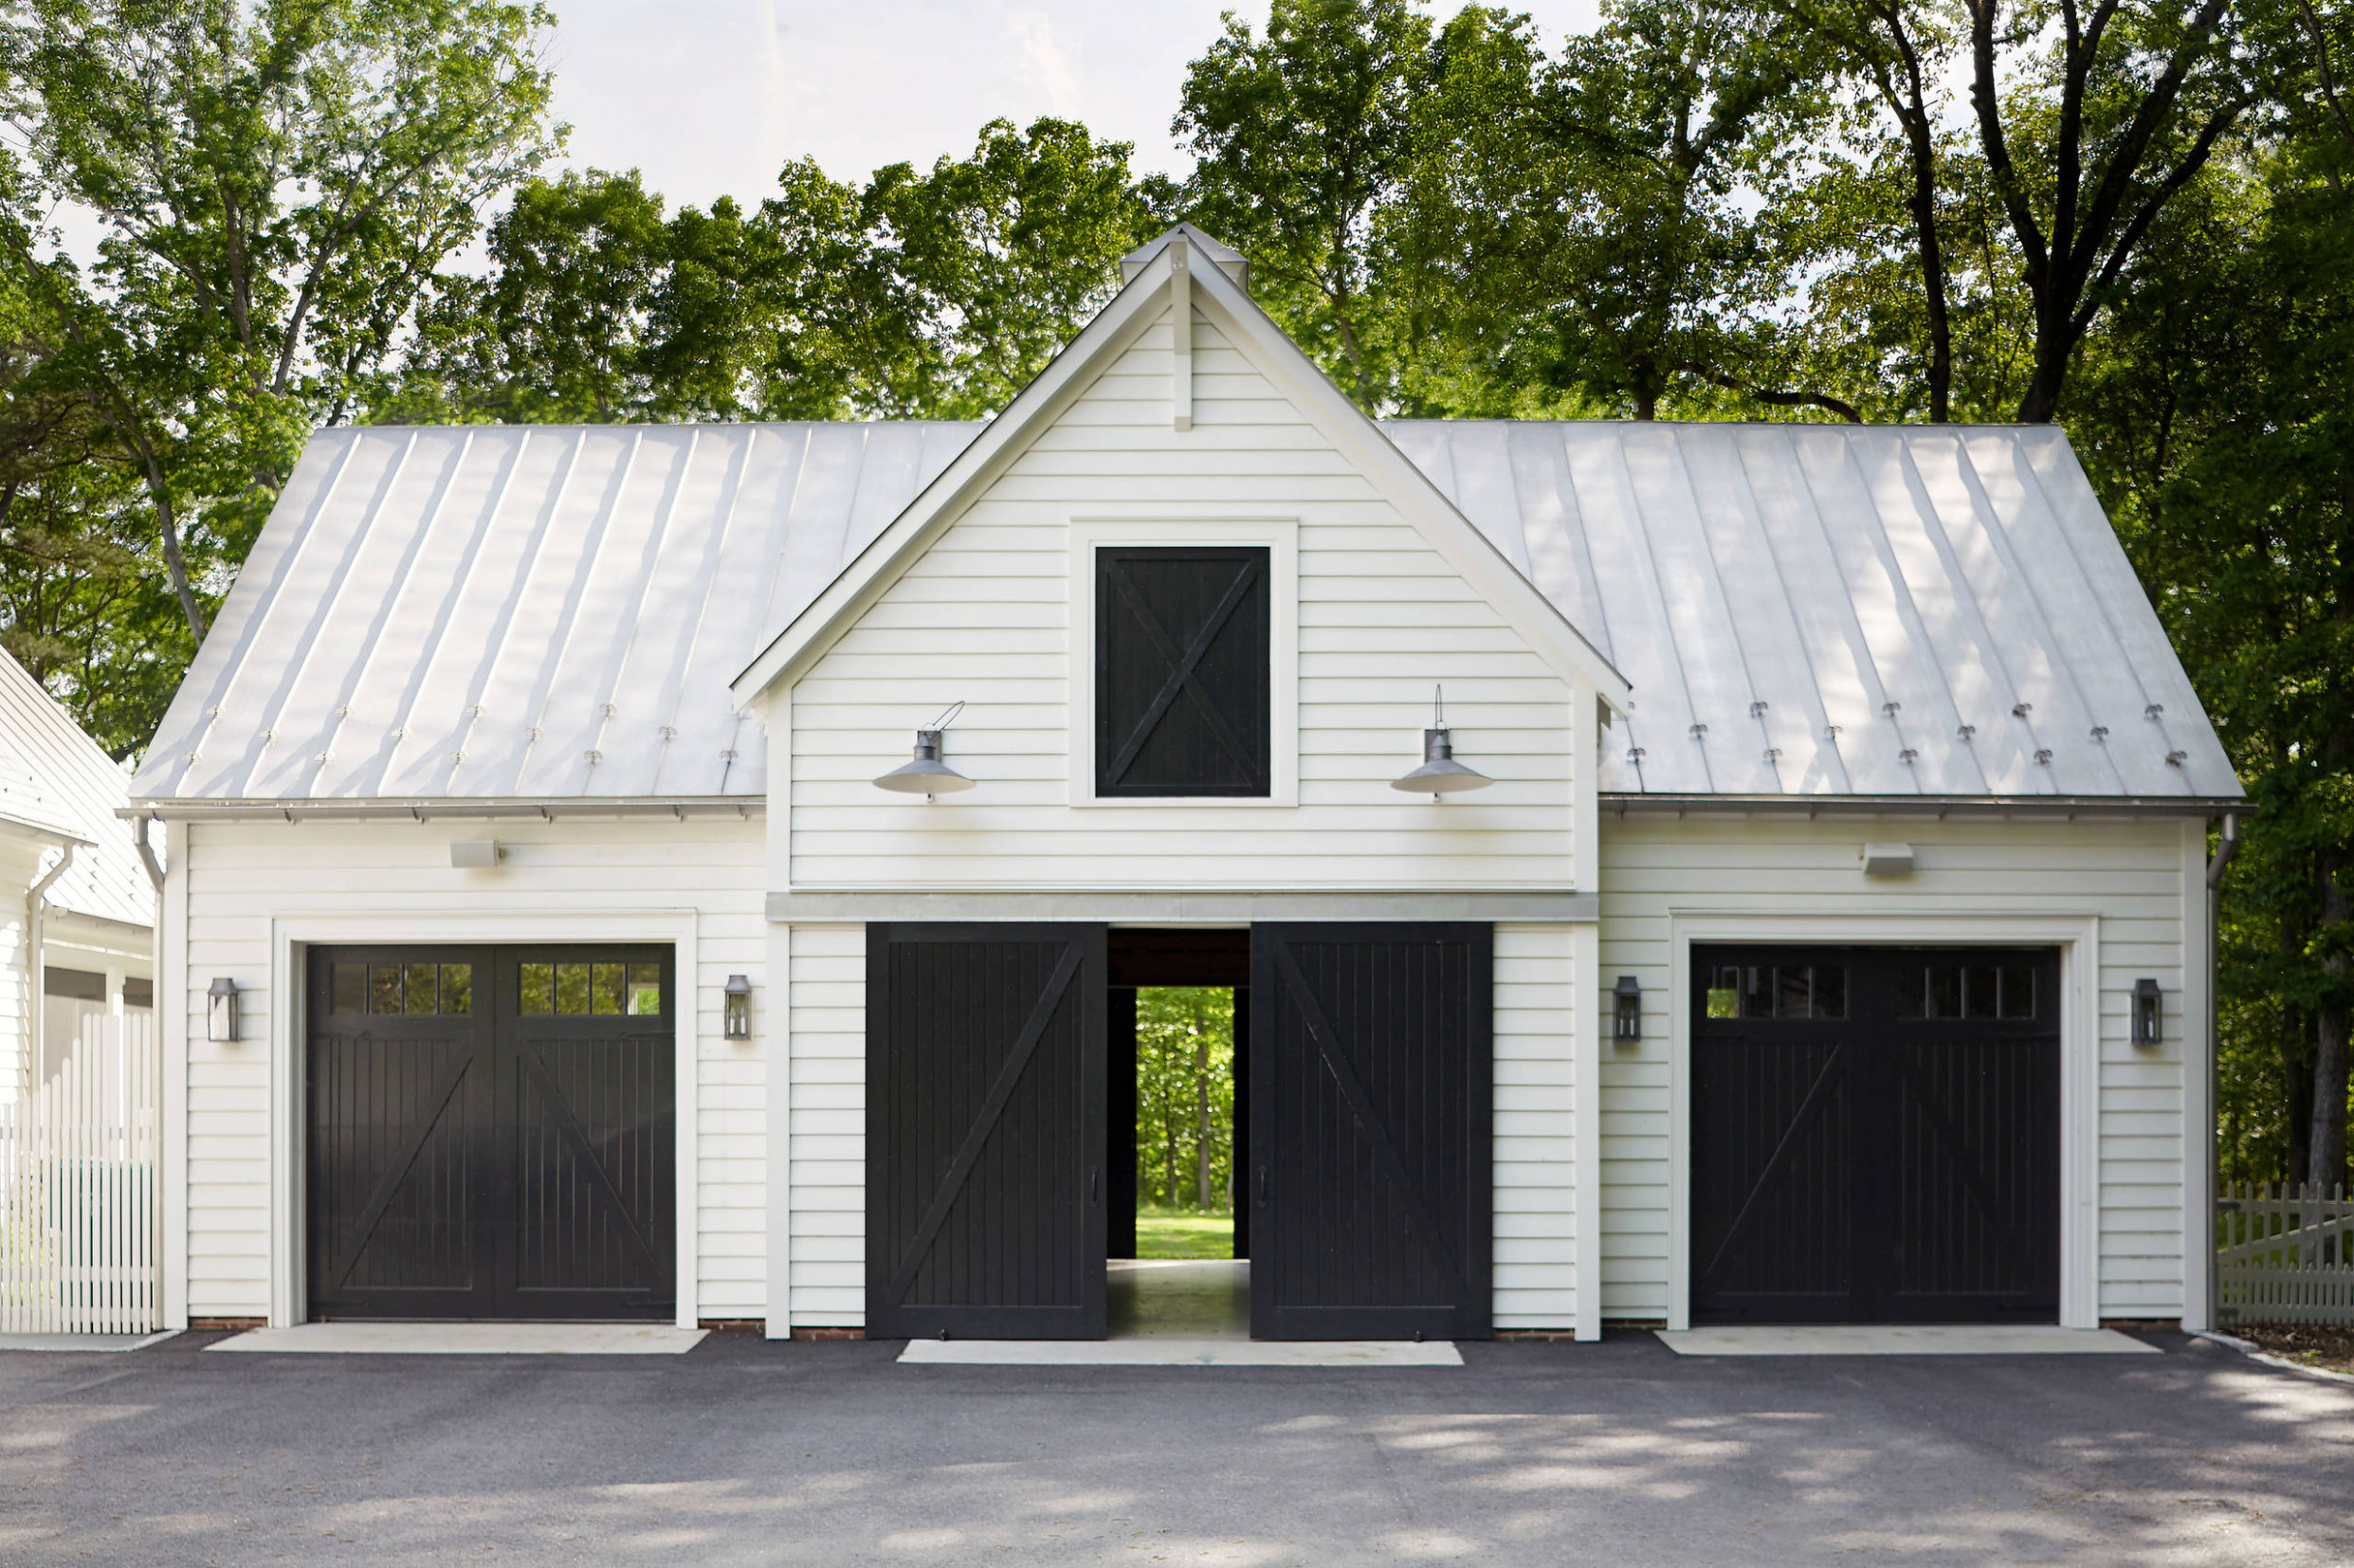 9 Beautiful Farmhouse Garage And Shed Pictures & Ideas | Houzz Carport Contemporary Quilts